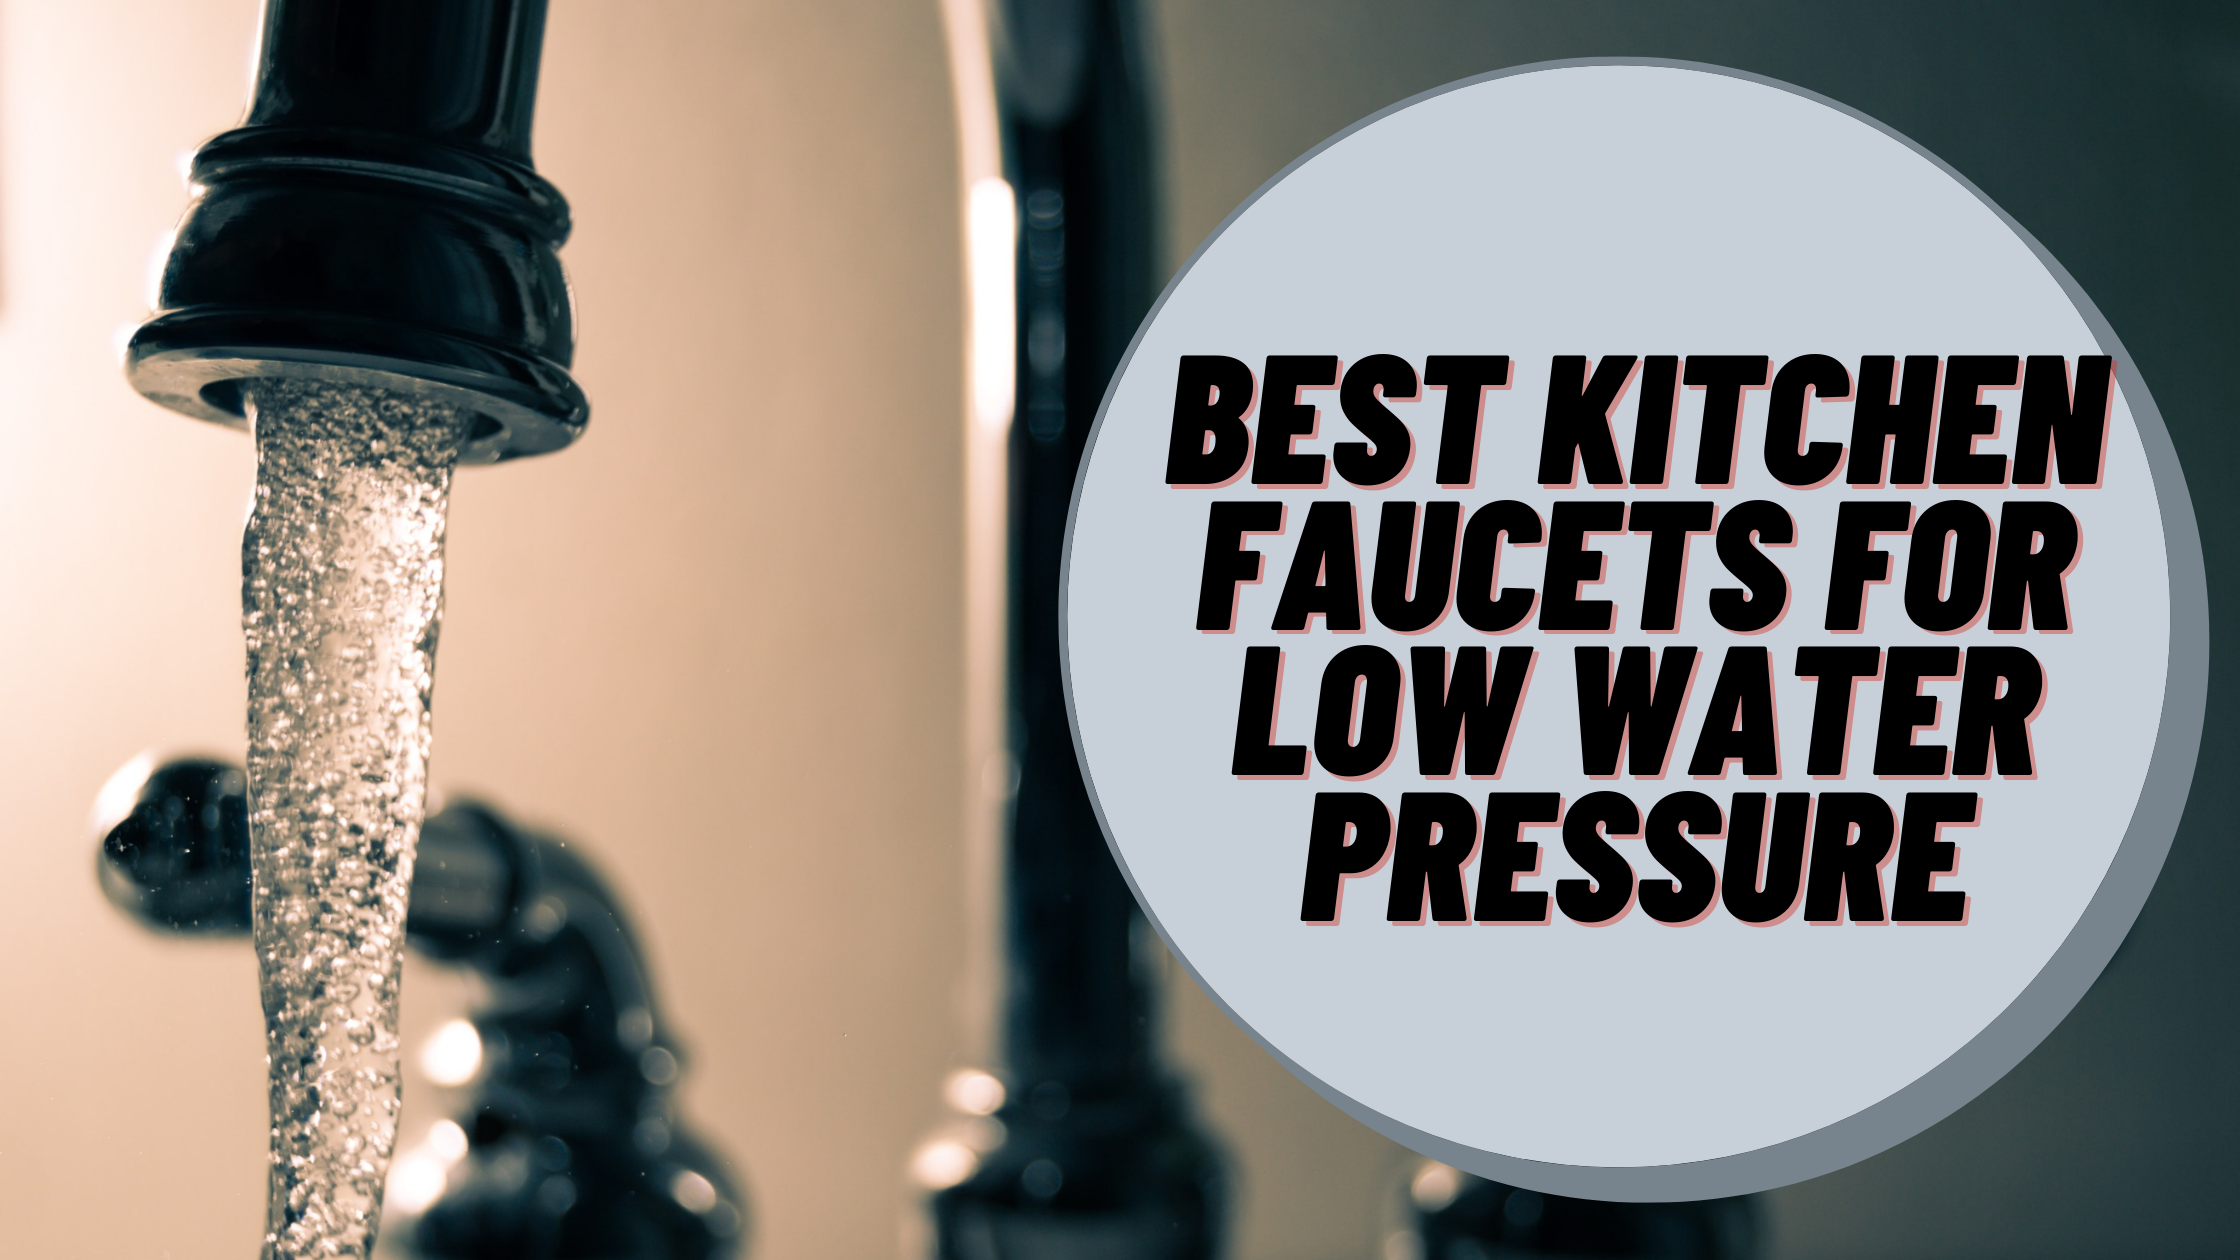 Best Kitchen Faucets For Low Water Pressure